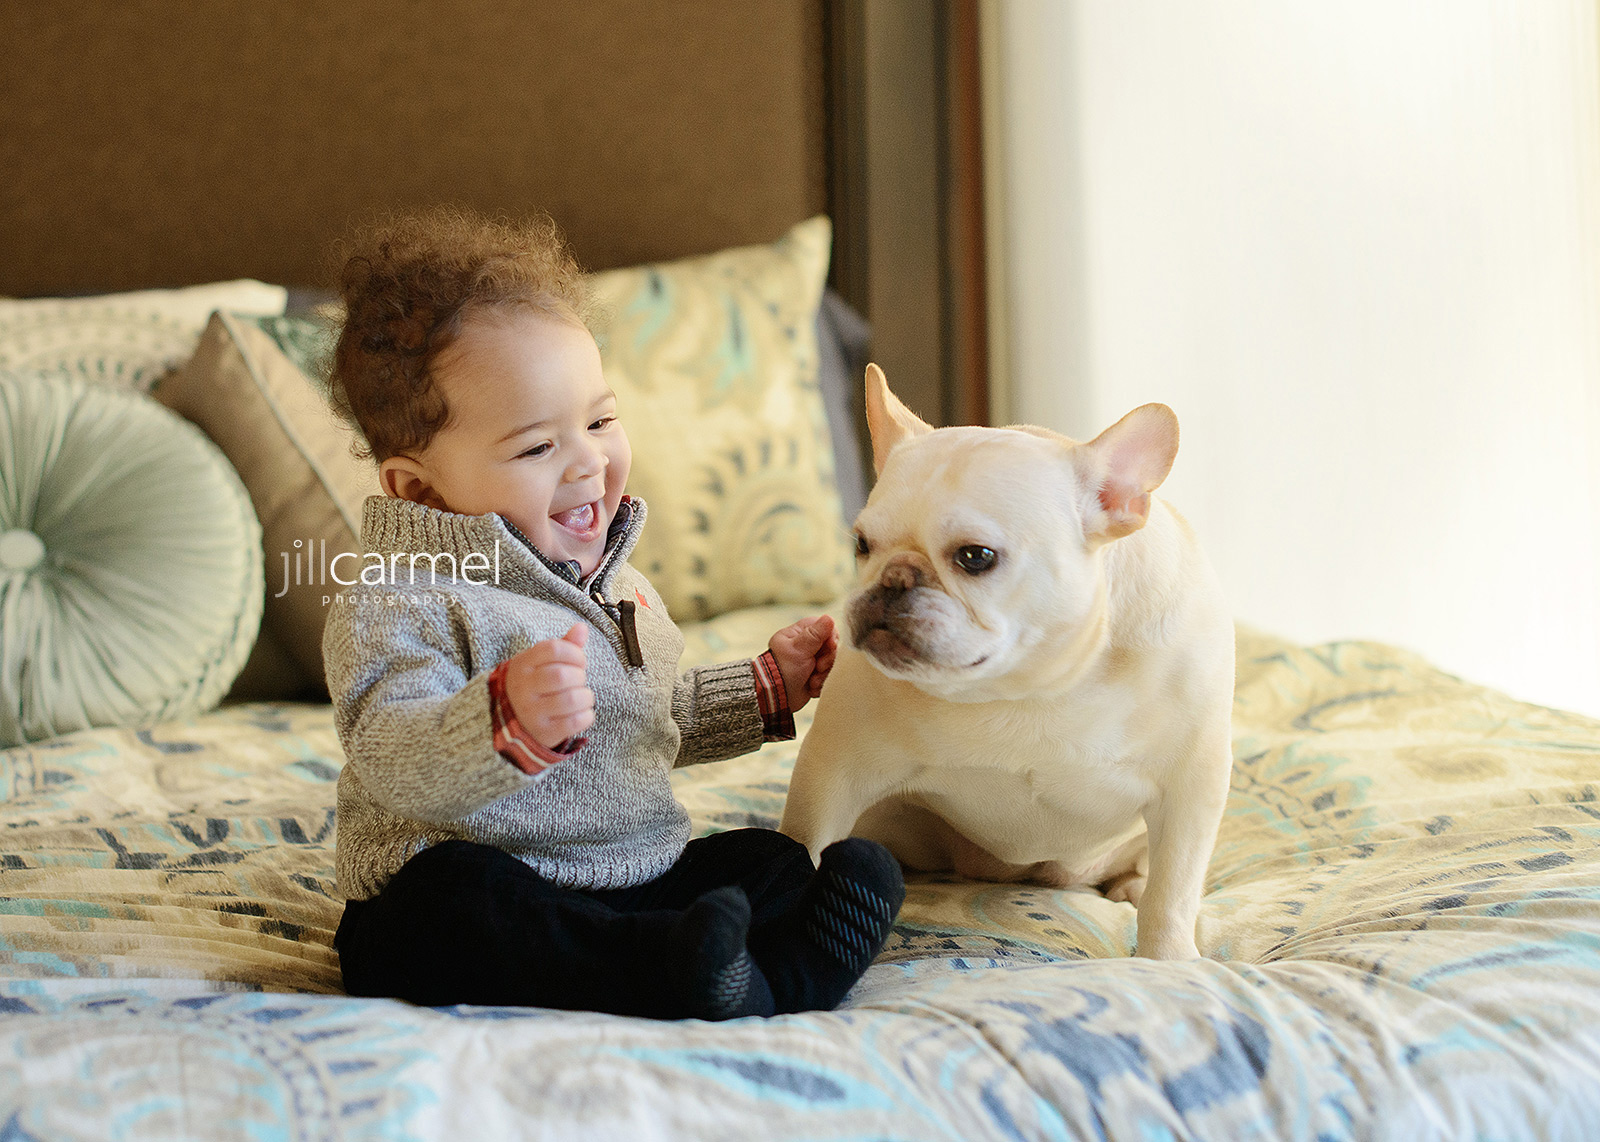 Vince Carter Baby Boy with French Bulldog on Bed